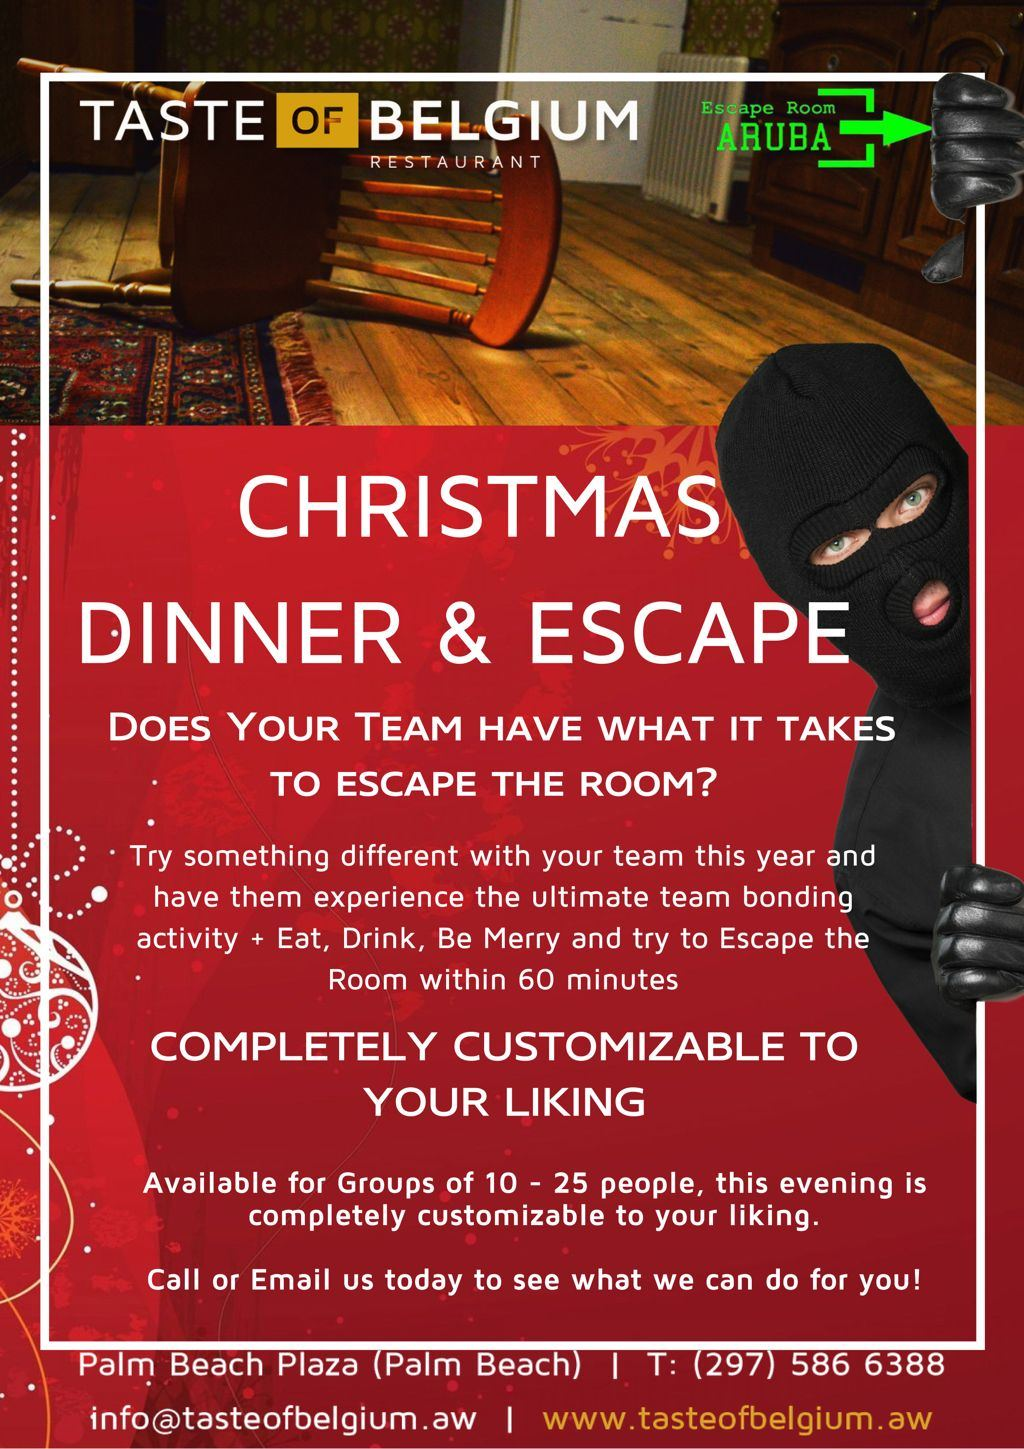 Taste of Belgium's Christmas Dinner & Escape